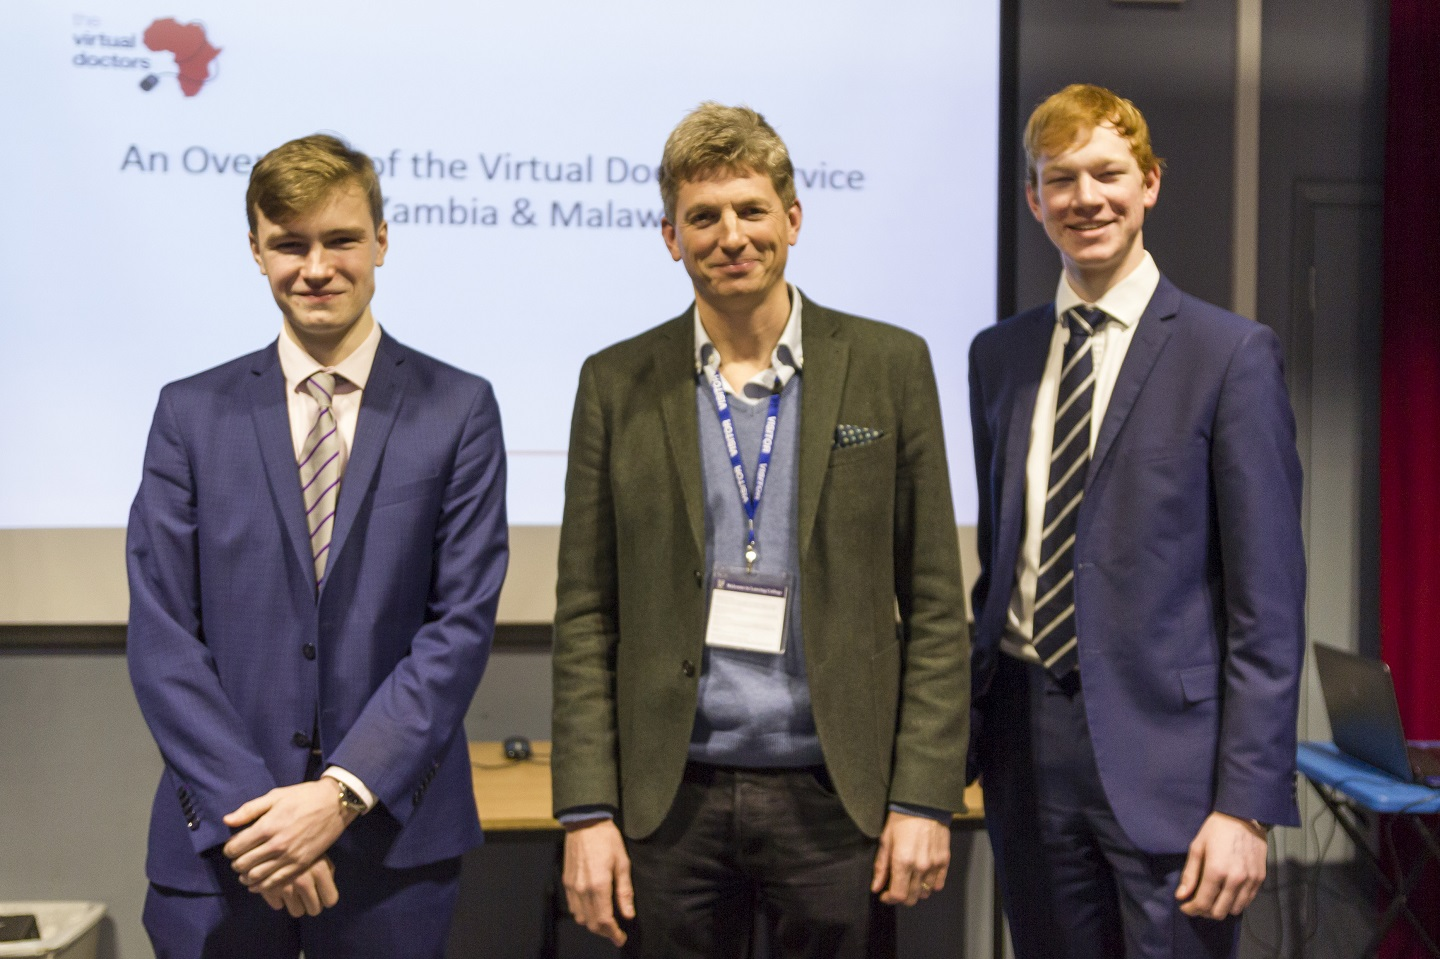 Virtual Doctors at Lancing College